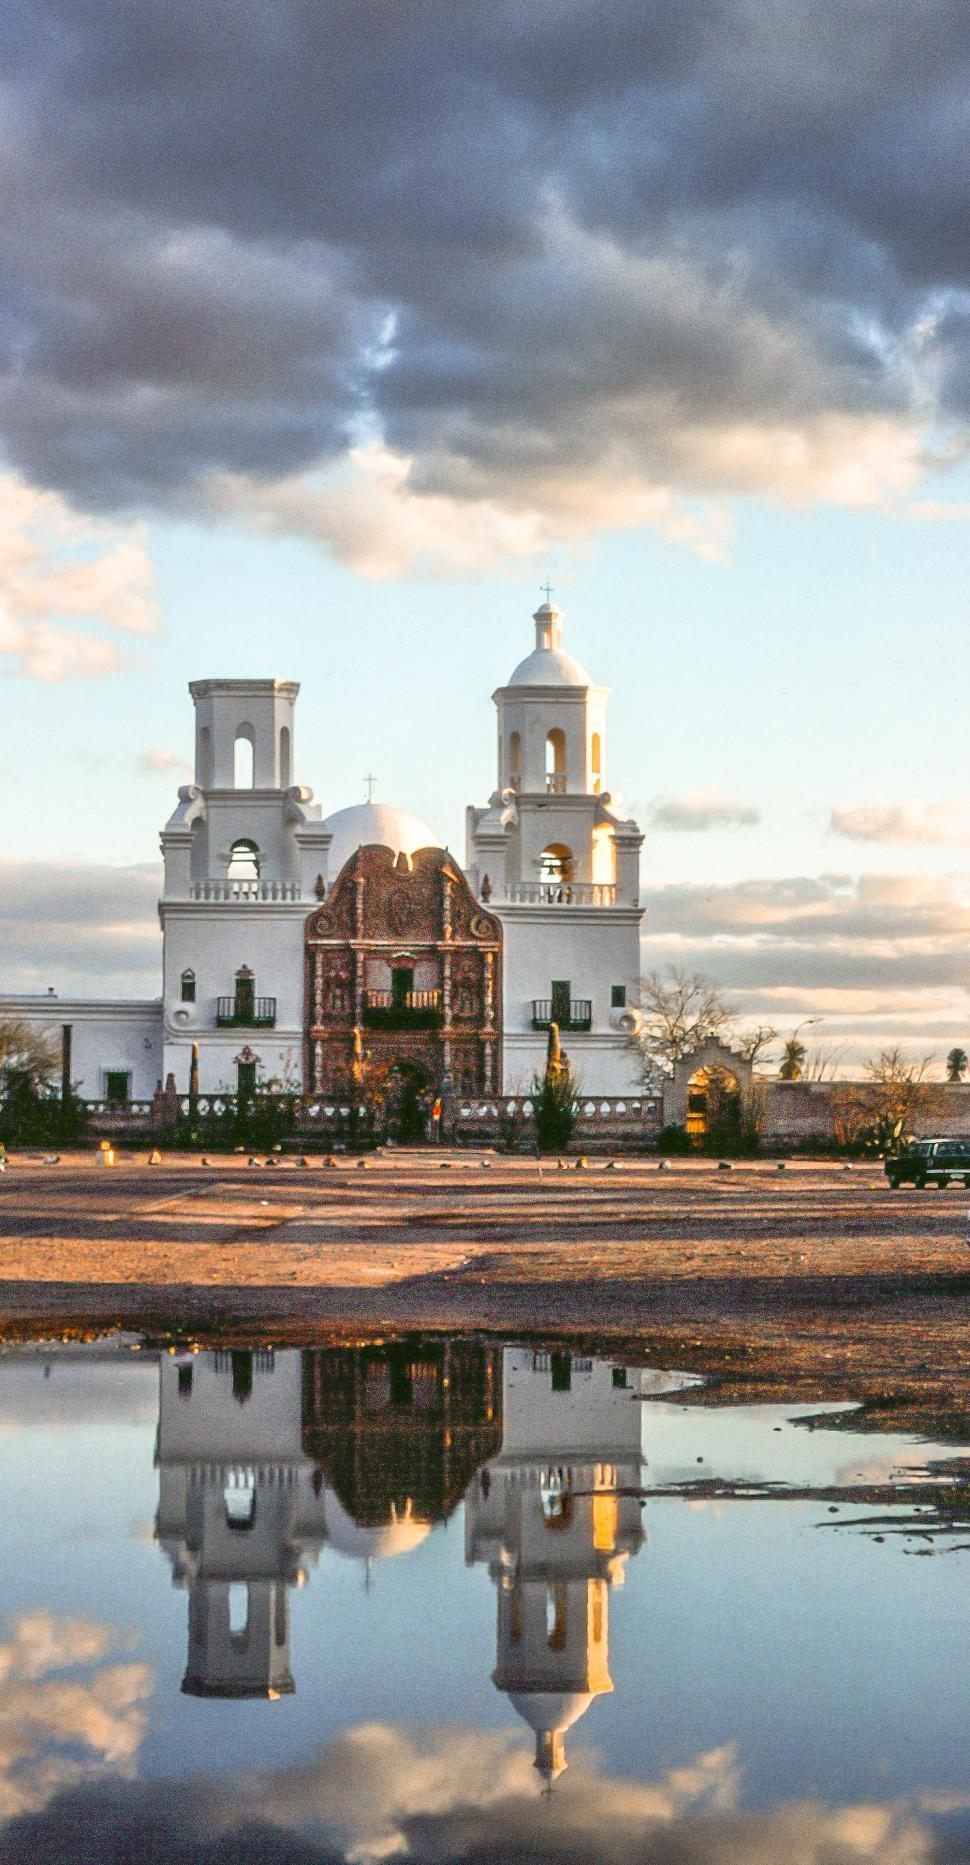 Download Free Stock HD Photo of View of Mission San Xavier del Bac at Tucson Online